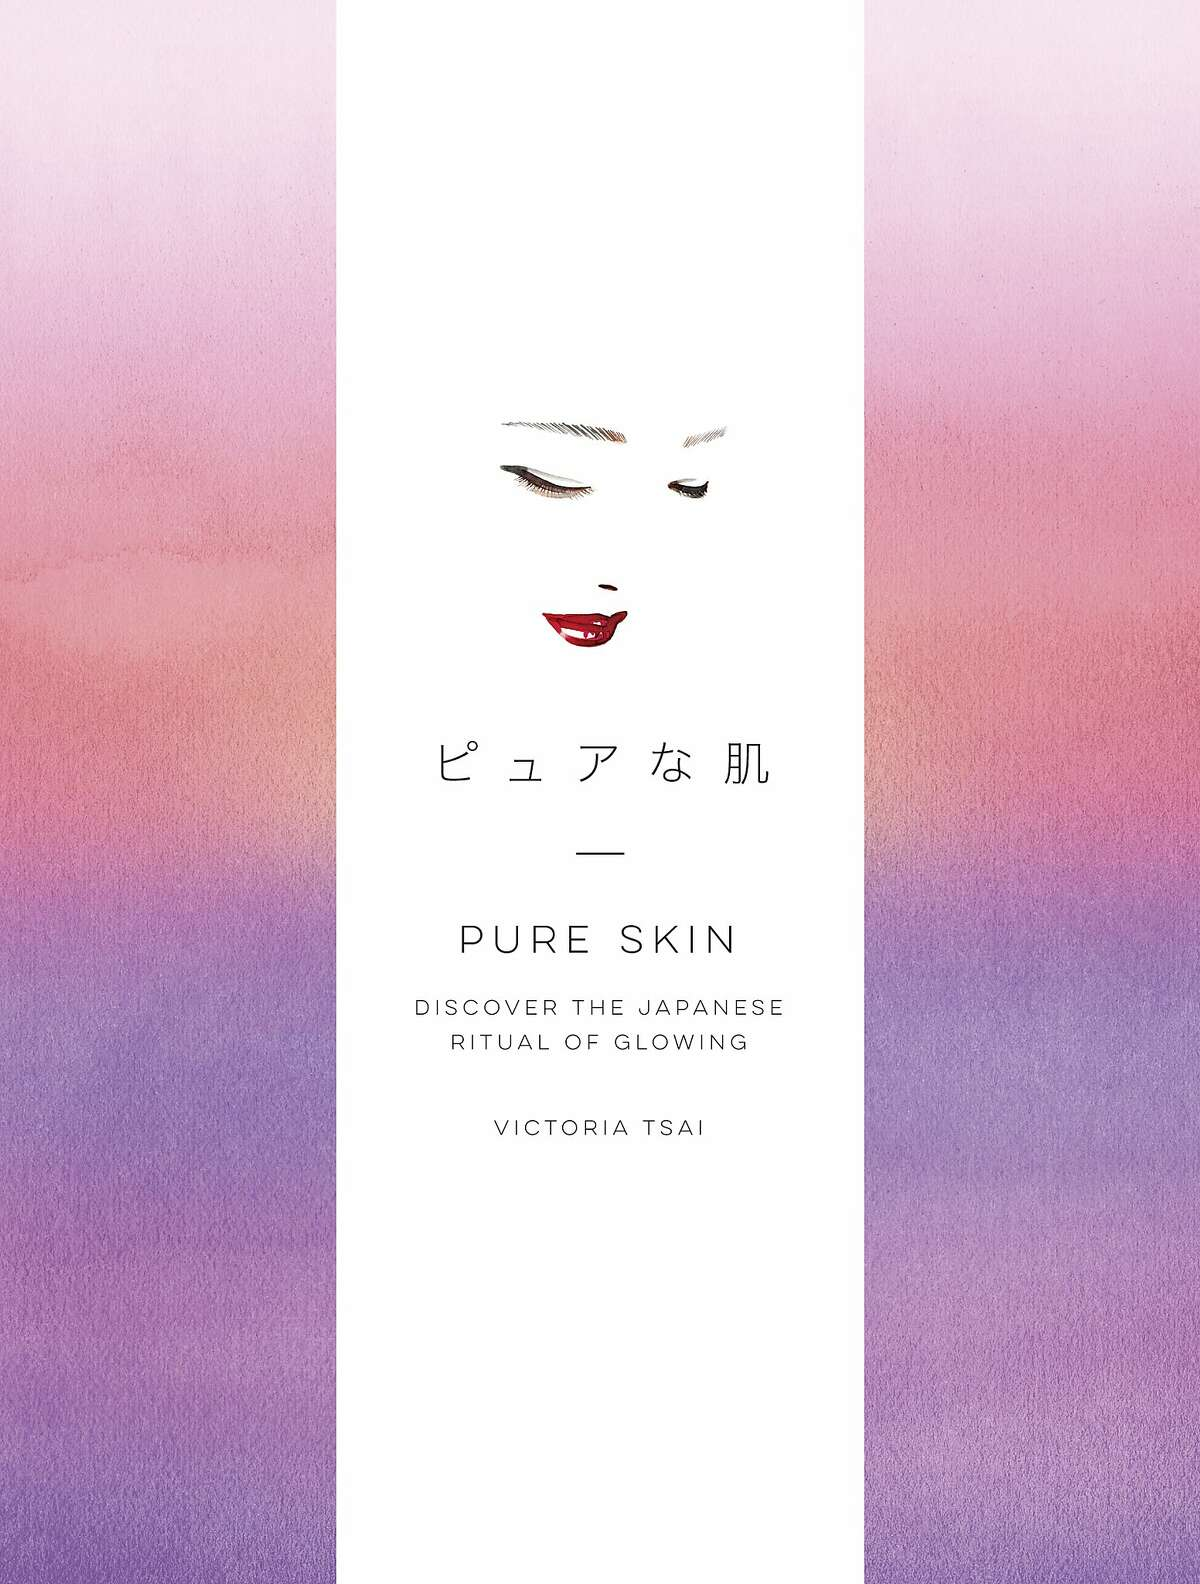 �Pure Skin: Discover the Japanese Ritual of Glowing� (Clarkson-Potter; 128 pages; $18) by Tatcha founder and CEO Victoria Tsai is full of interesting historical tidbits about Japanese culture and the geisha and how those tidbits can translate to modern-day beauty, accompanied by stunning illustrations.